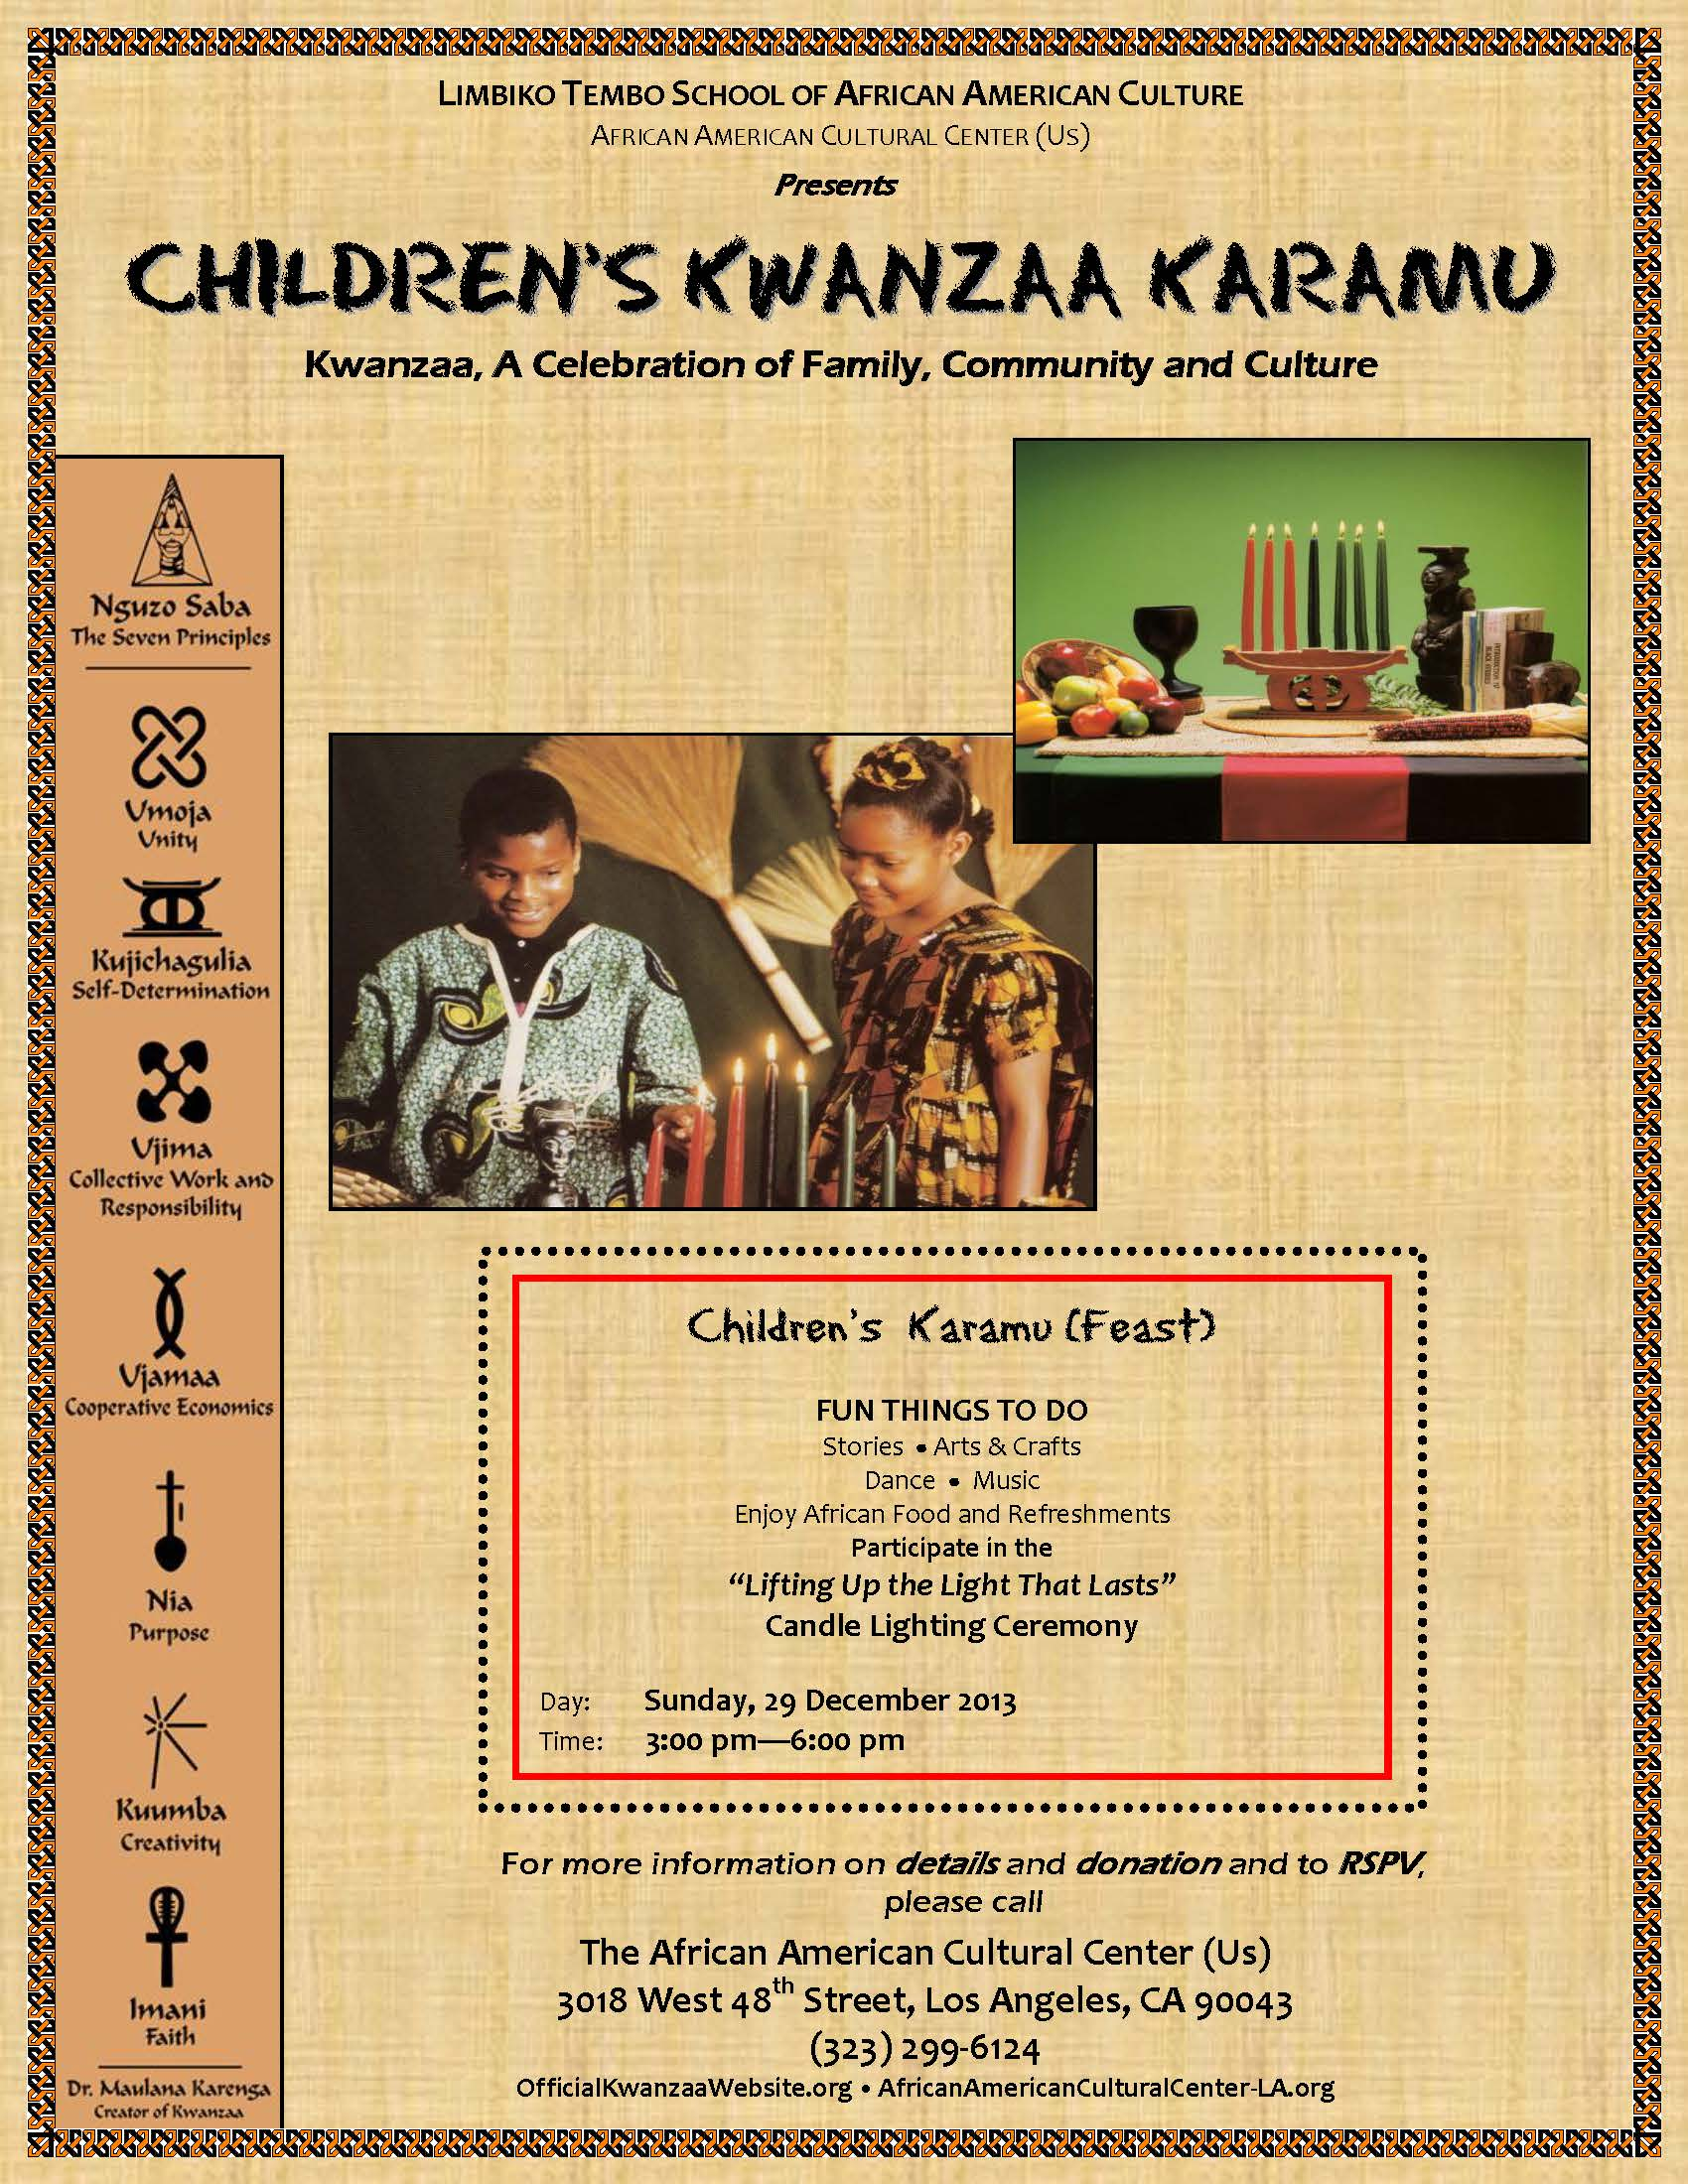 Children's Kwanzaa Karamu Flier v3 12-19-13